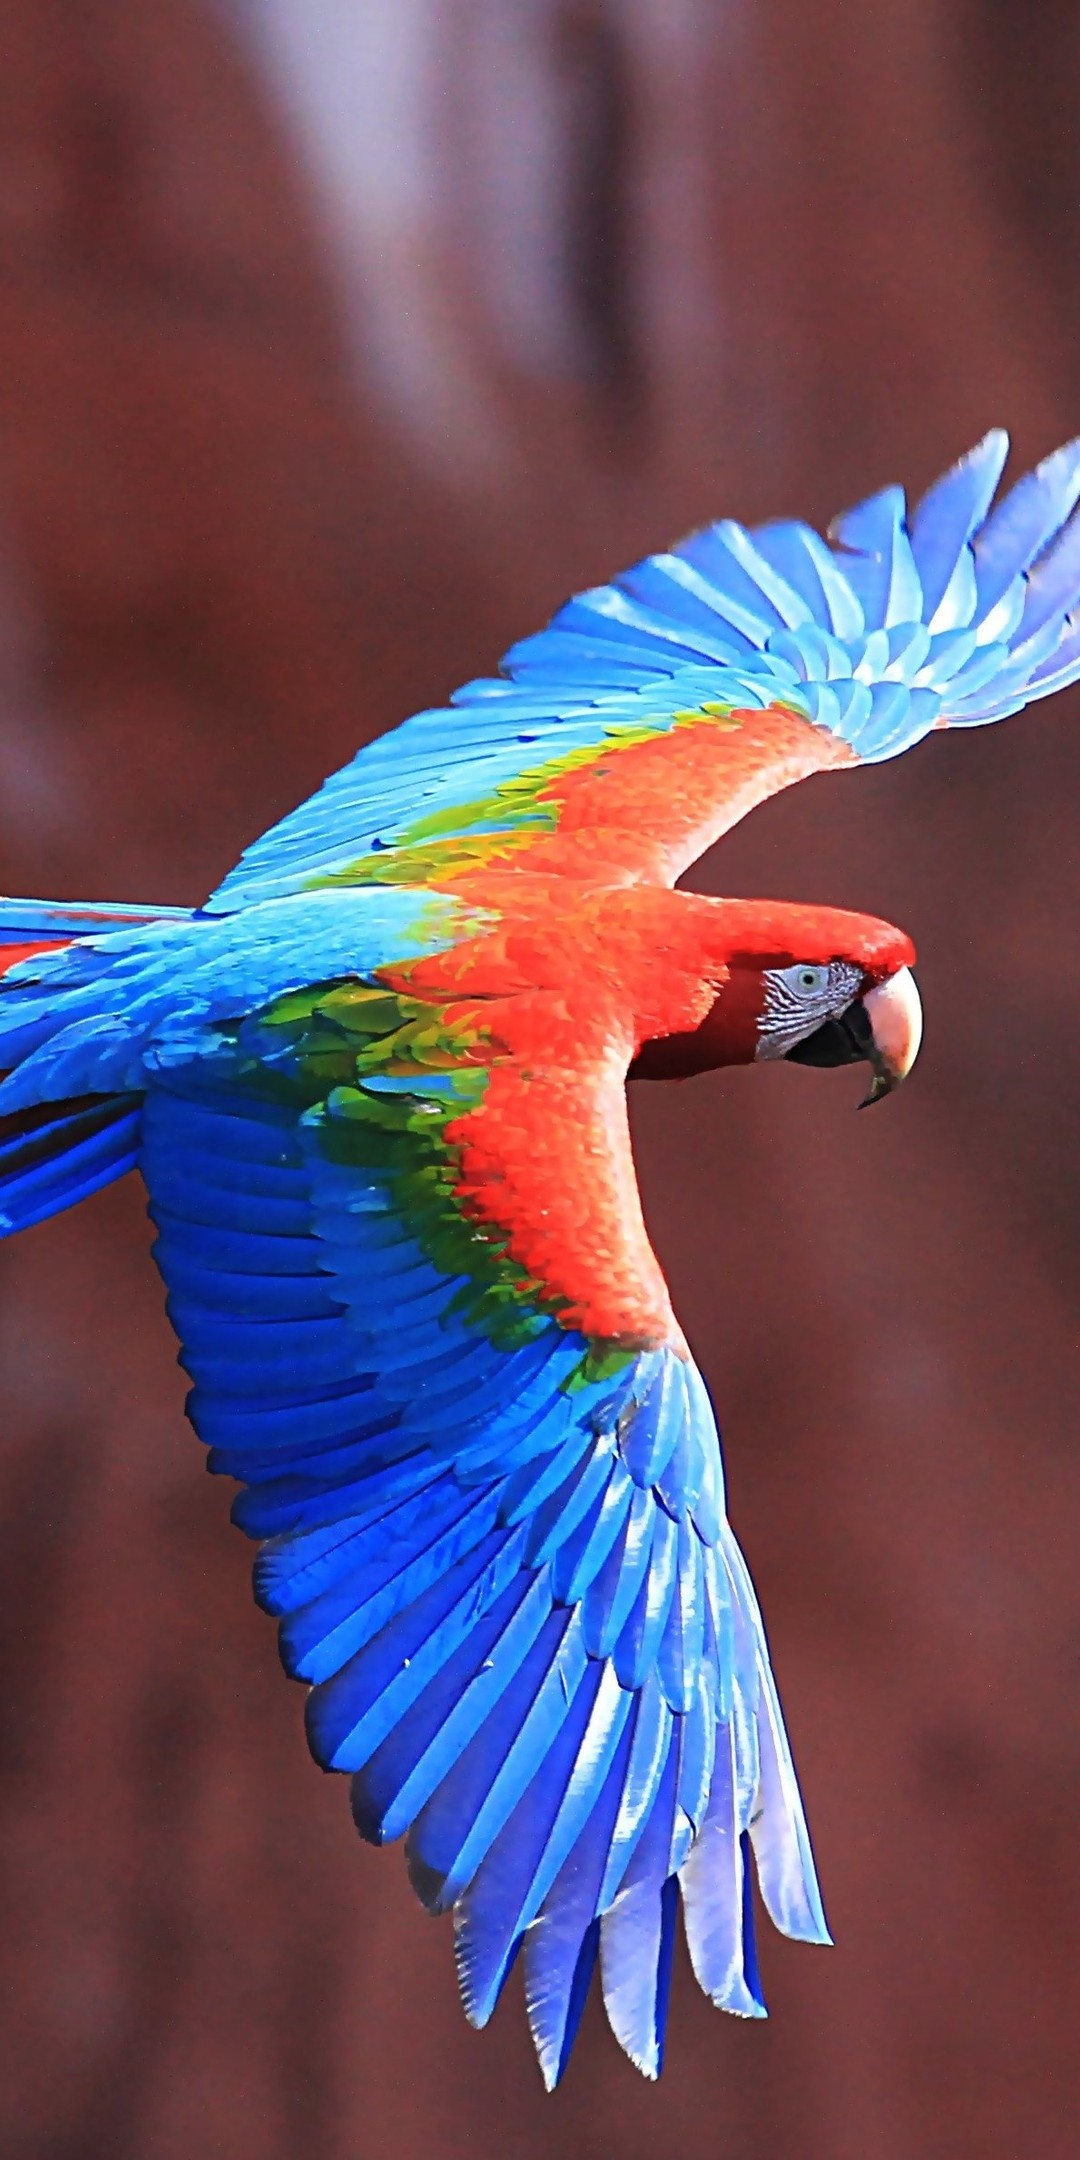 Red And Green Macaw Ultra Hd Wallpaper Download Wallpaper Samsung J6 Plus 720x1480 Download Hd Wallpaper Wallpapertip